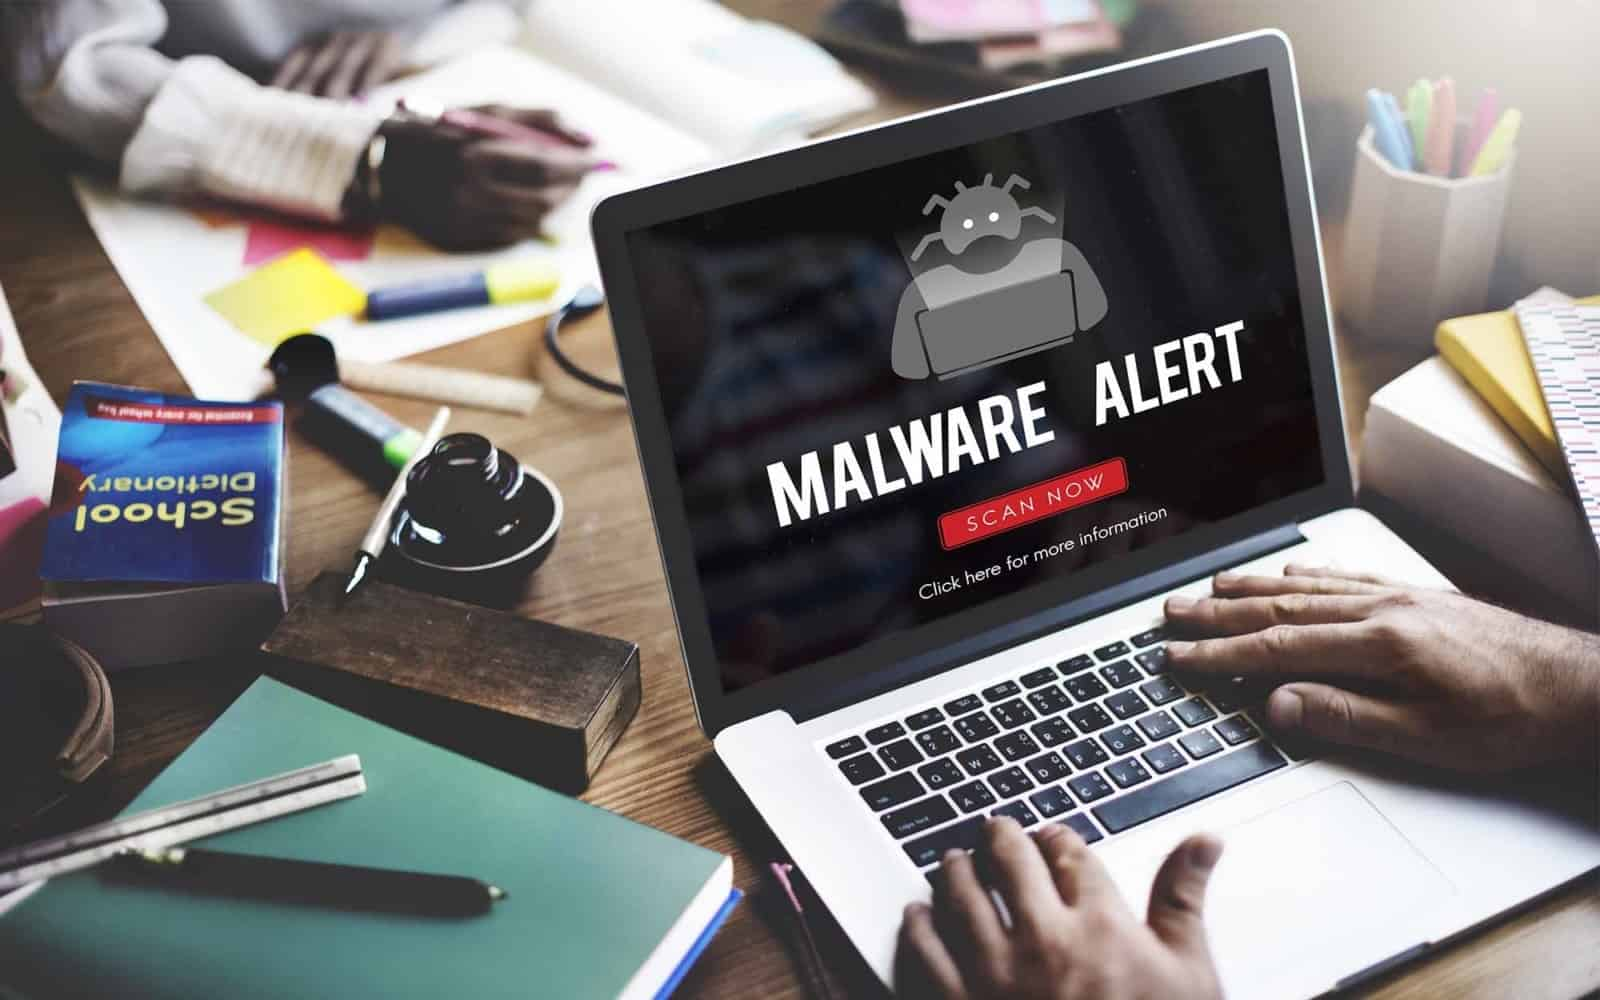 How to Detect Malware & Viruses Preemptively   ITque